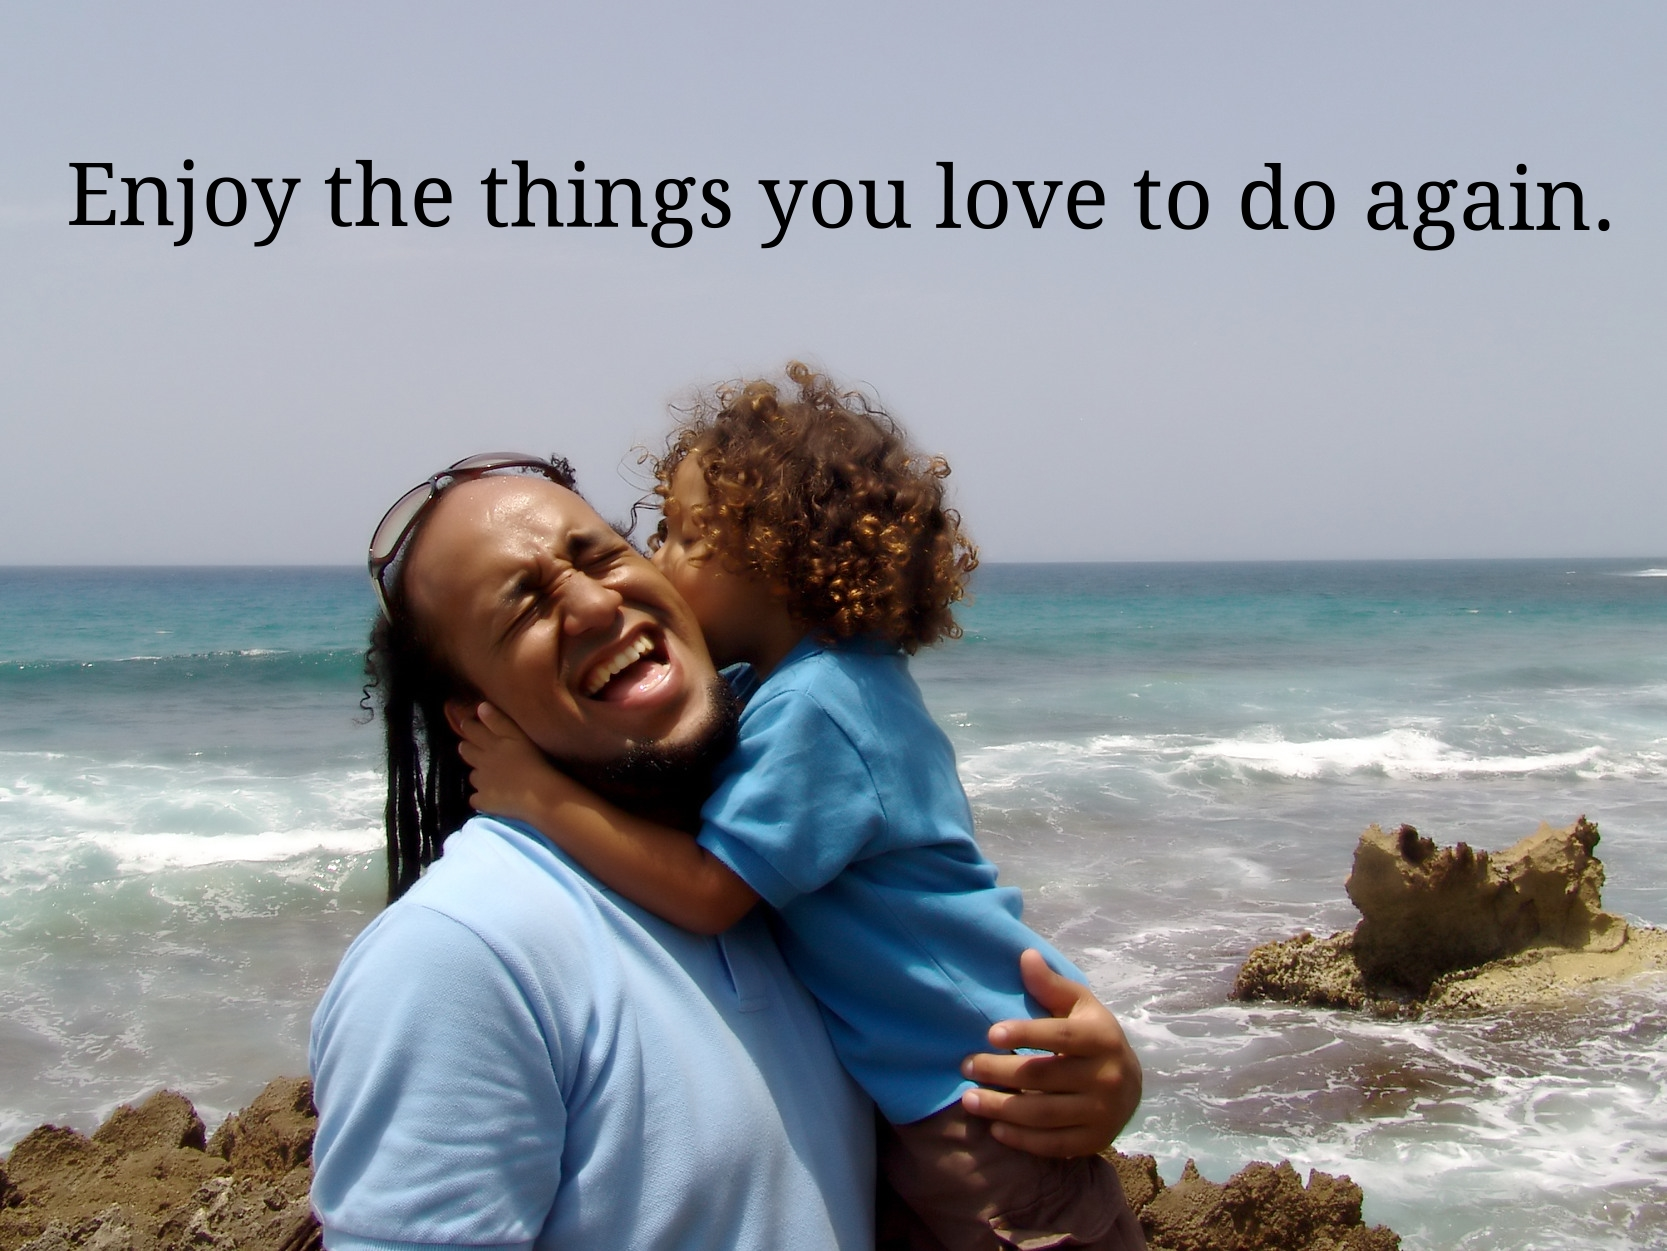 Enjoy the things you love to do again (A dad holds his son on the beach).